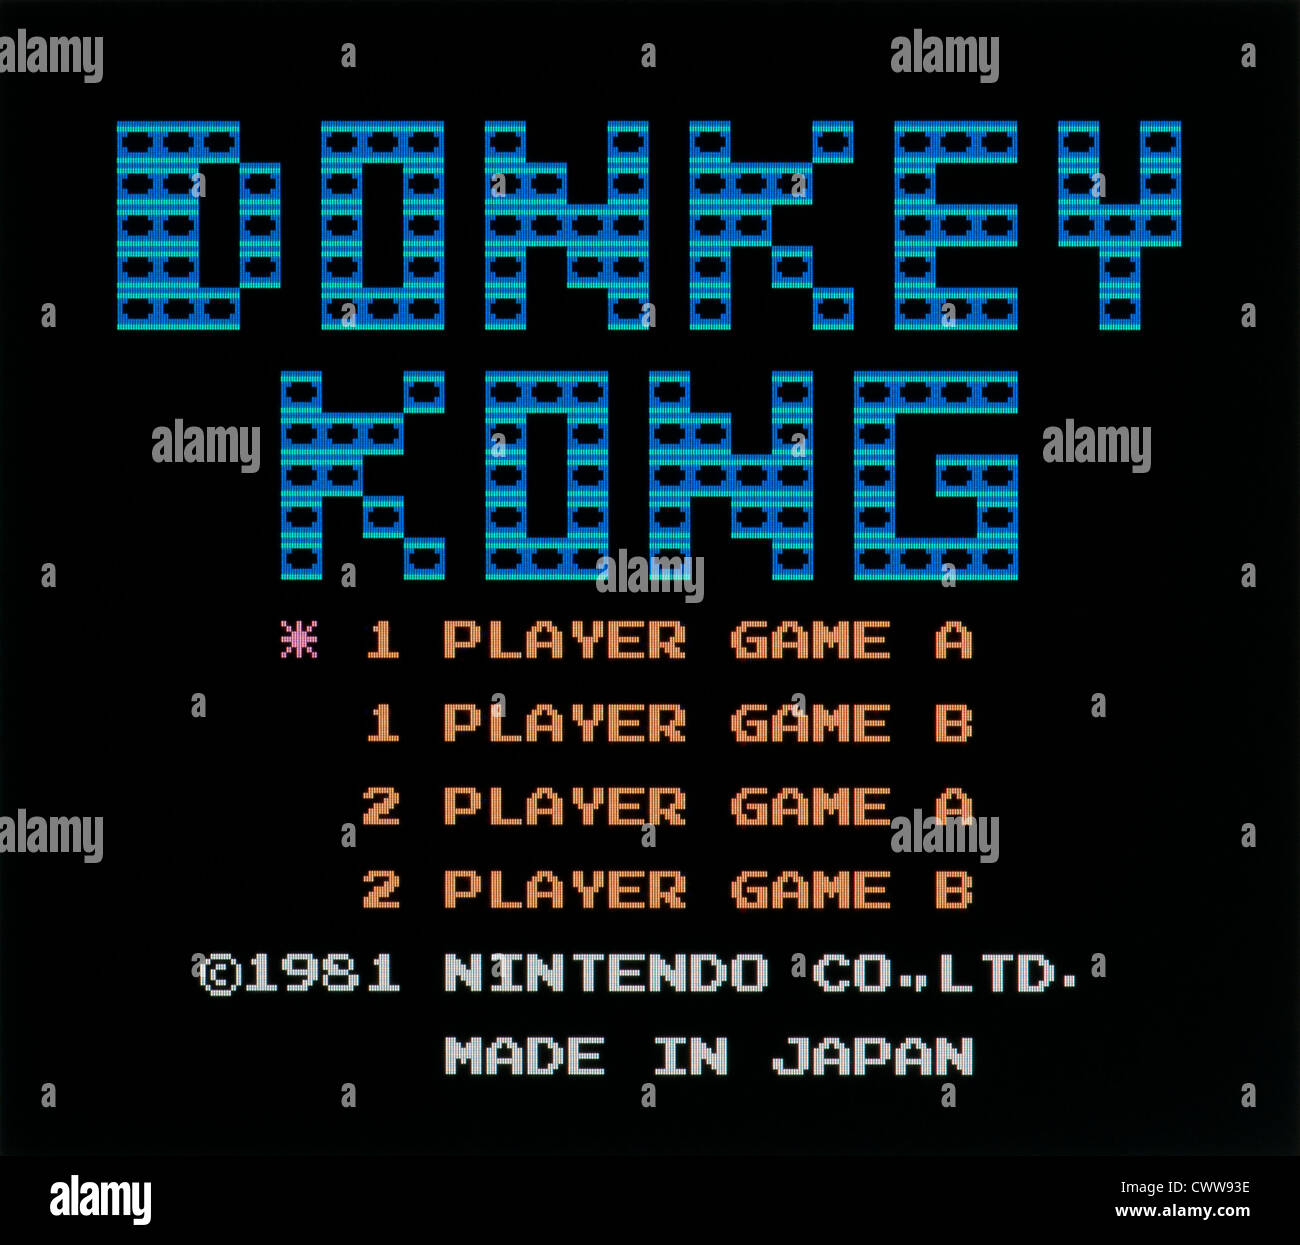 Donkey Kong Title screen,  arcade video game released on 1981 - Stock Image